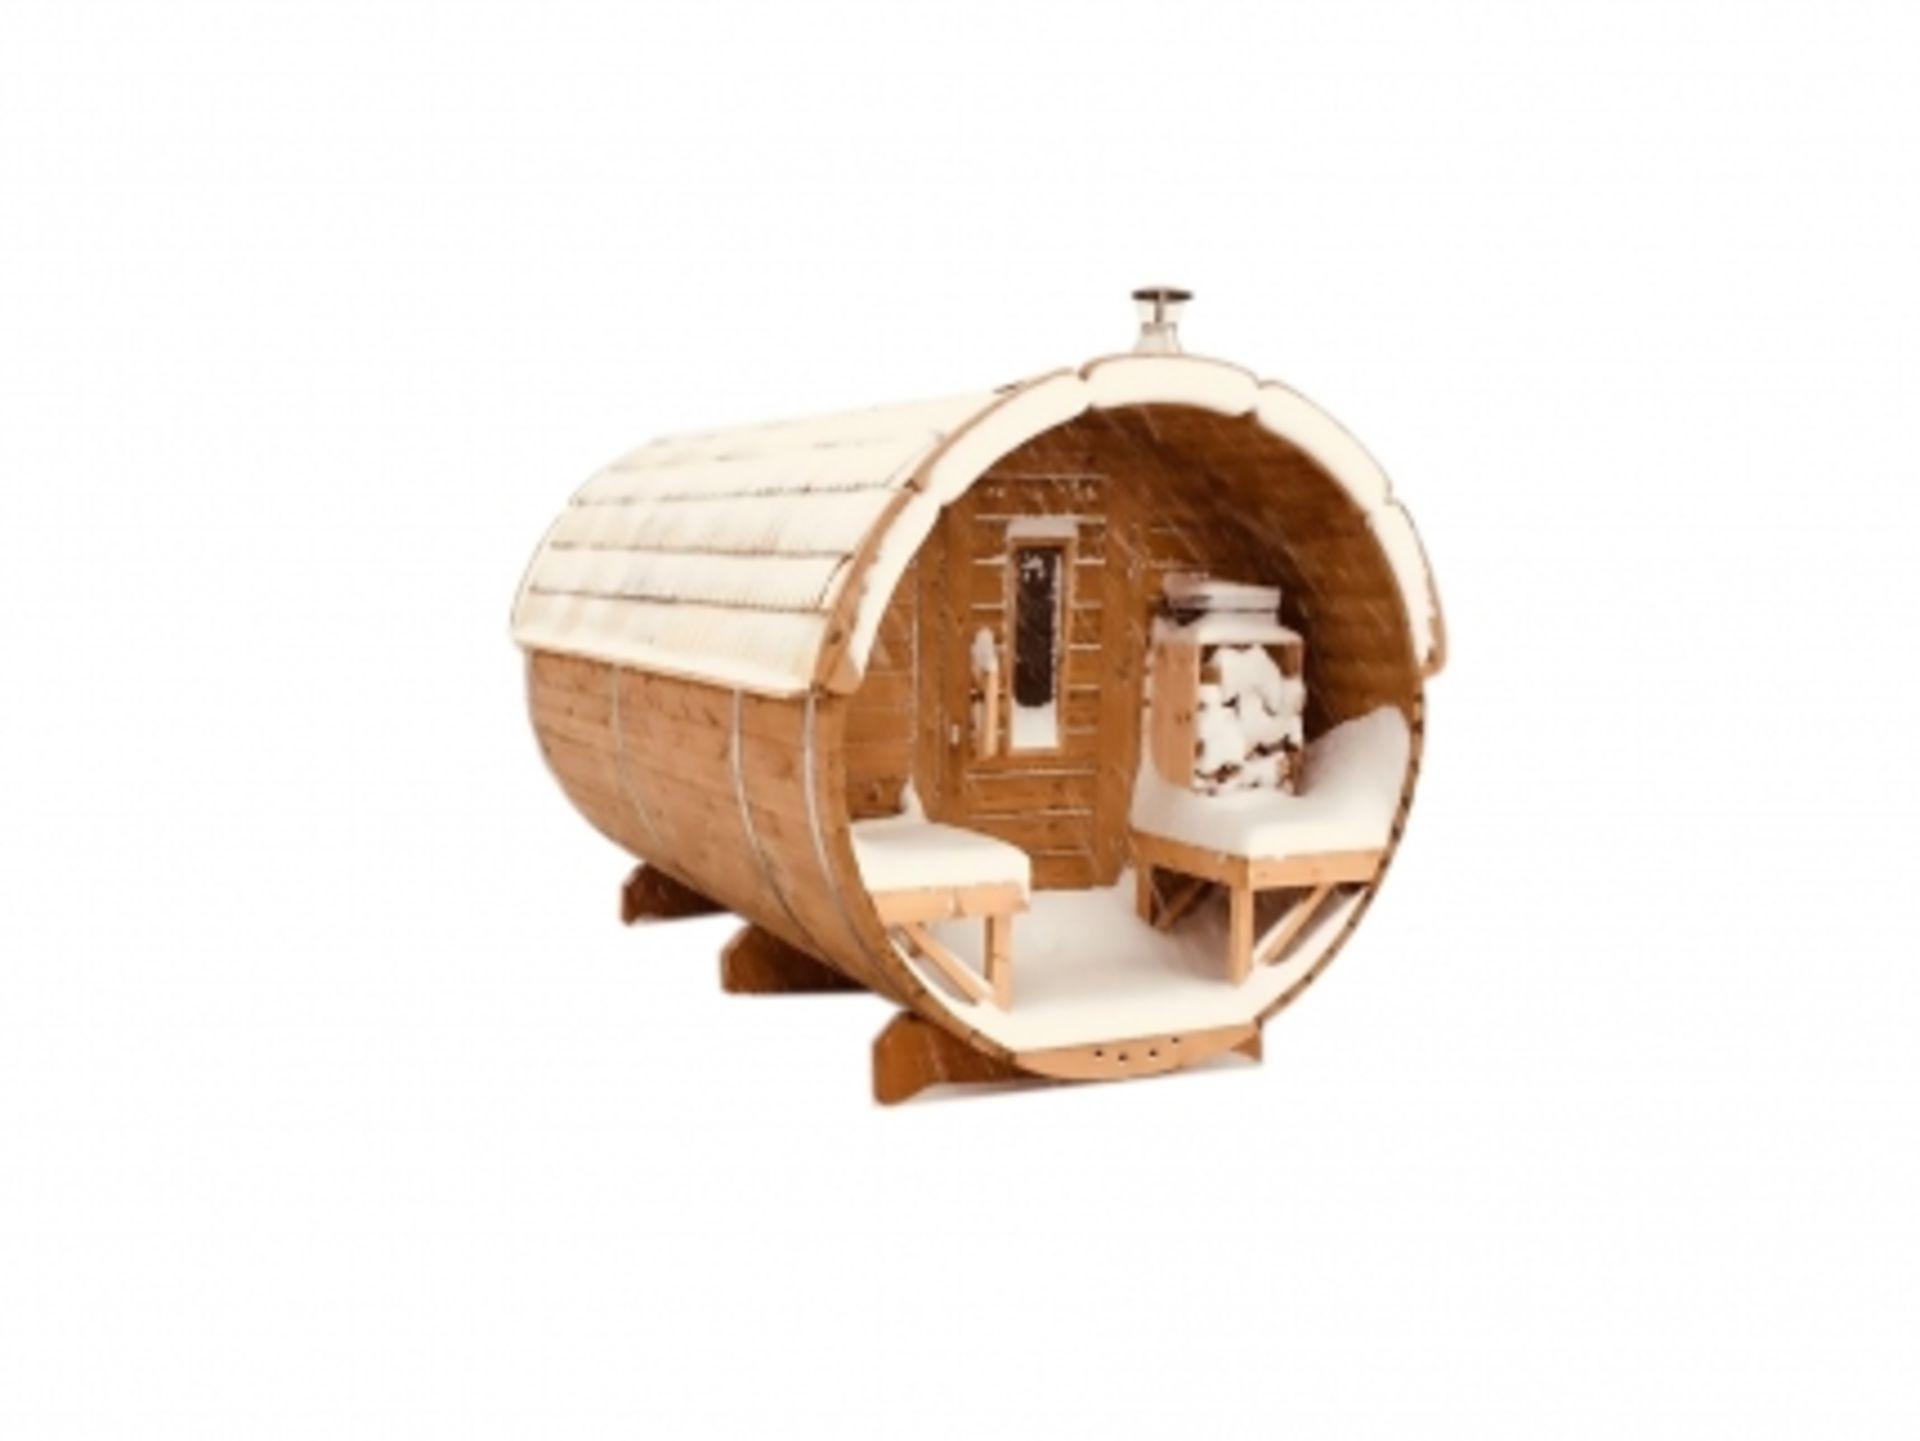 Lot 18060 - V Brand New Luxury 3 x 1.9m Sauna Barrel with Eco Friendly Roof - Comes Fully Assembled - Includes